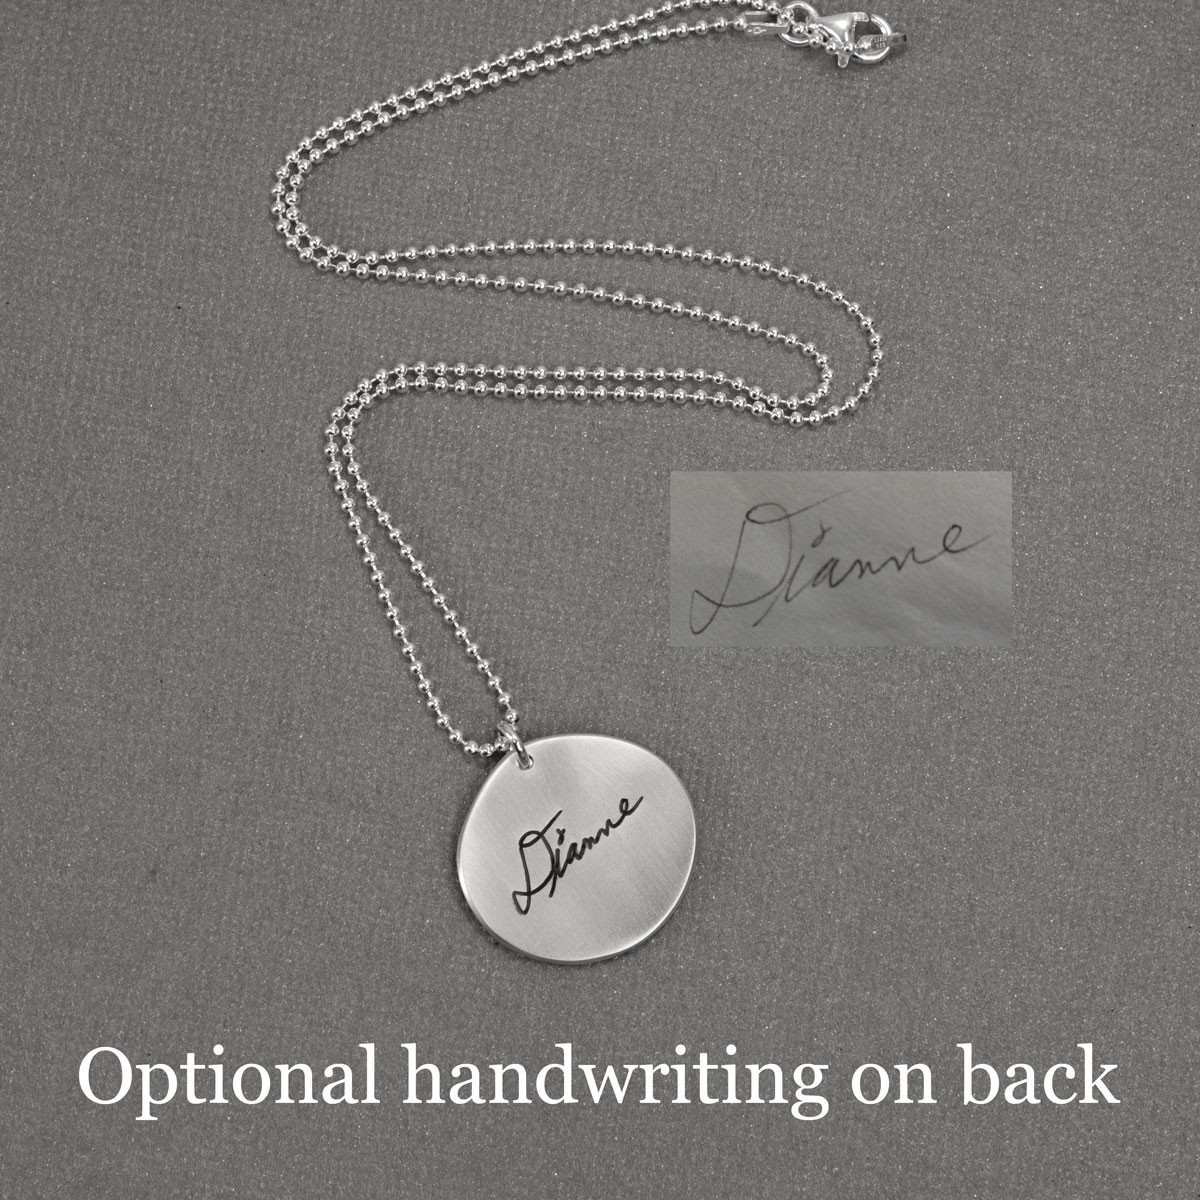 Silver memorial handwriting jewelry necklace in silver, shown with original writing